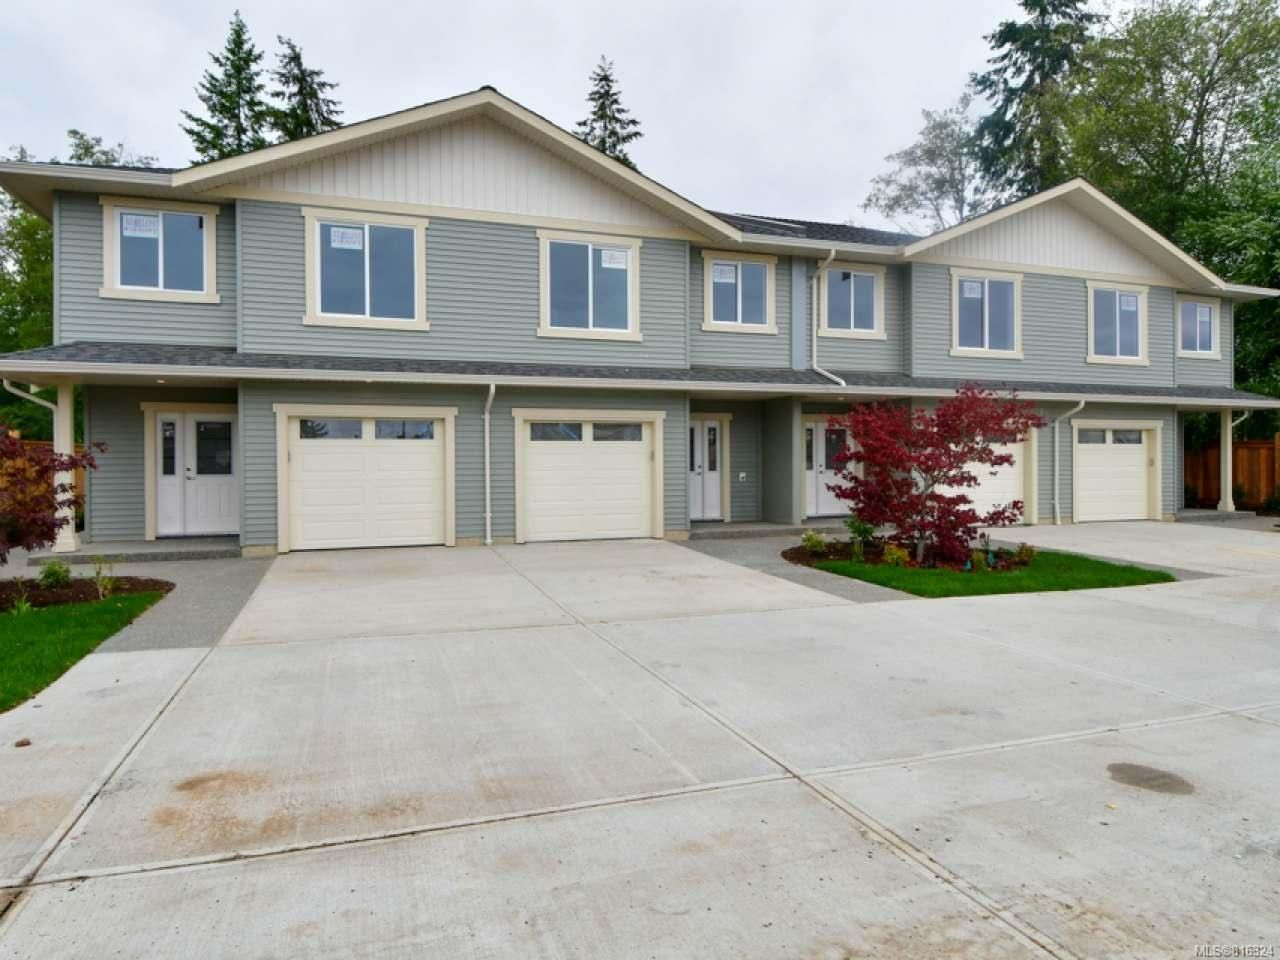 Photo 36: Photos: A 336 Petersen Rd in CAMPBELL RIVER: CR Campbell River West Row/Townhouse for sale (Campbell River)  : MLS®# 816324